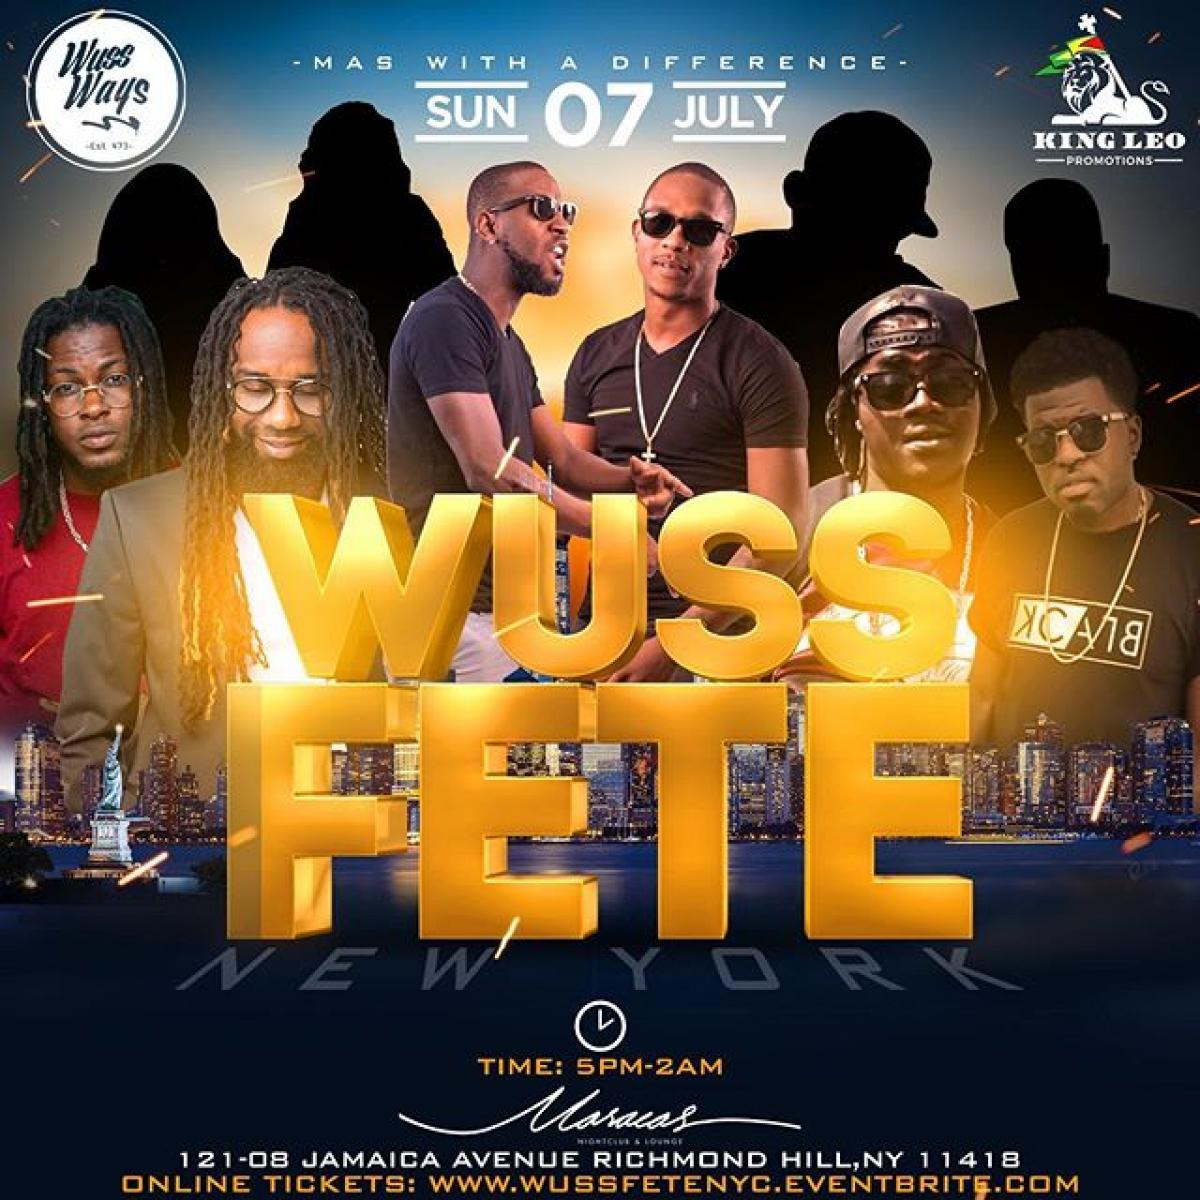 Wuss Fete flyer or graphic.